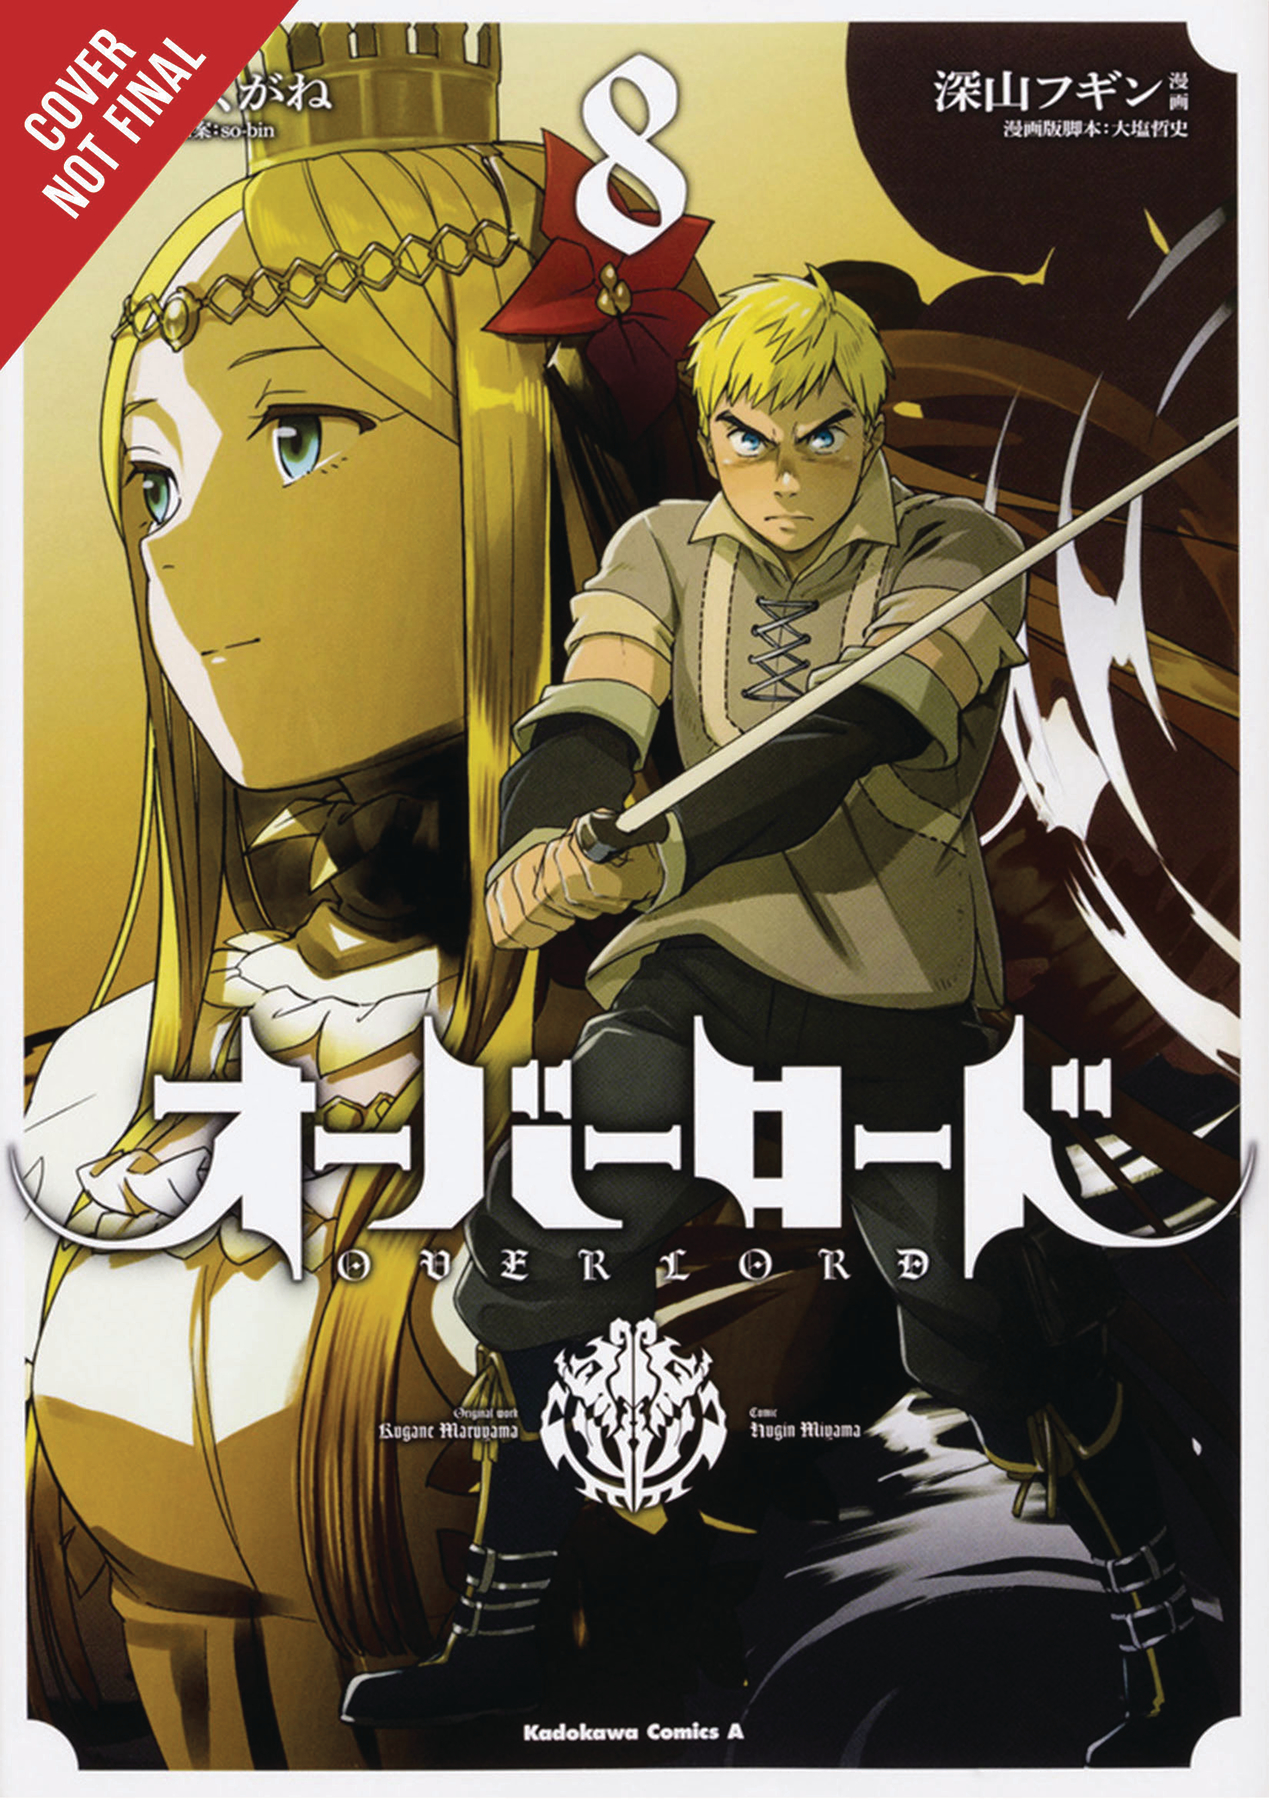 OVERLORD GN VOL 08 (MR)